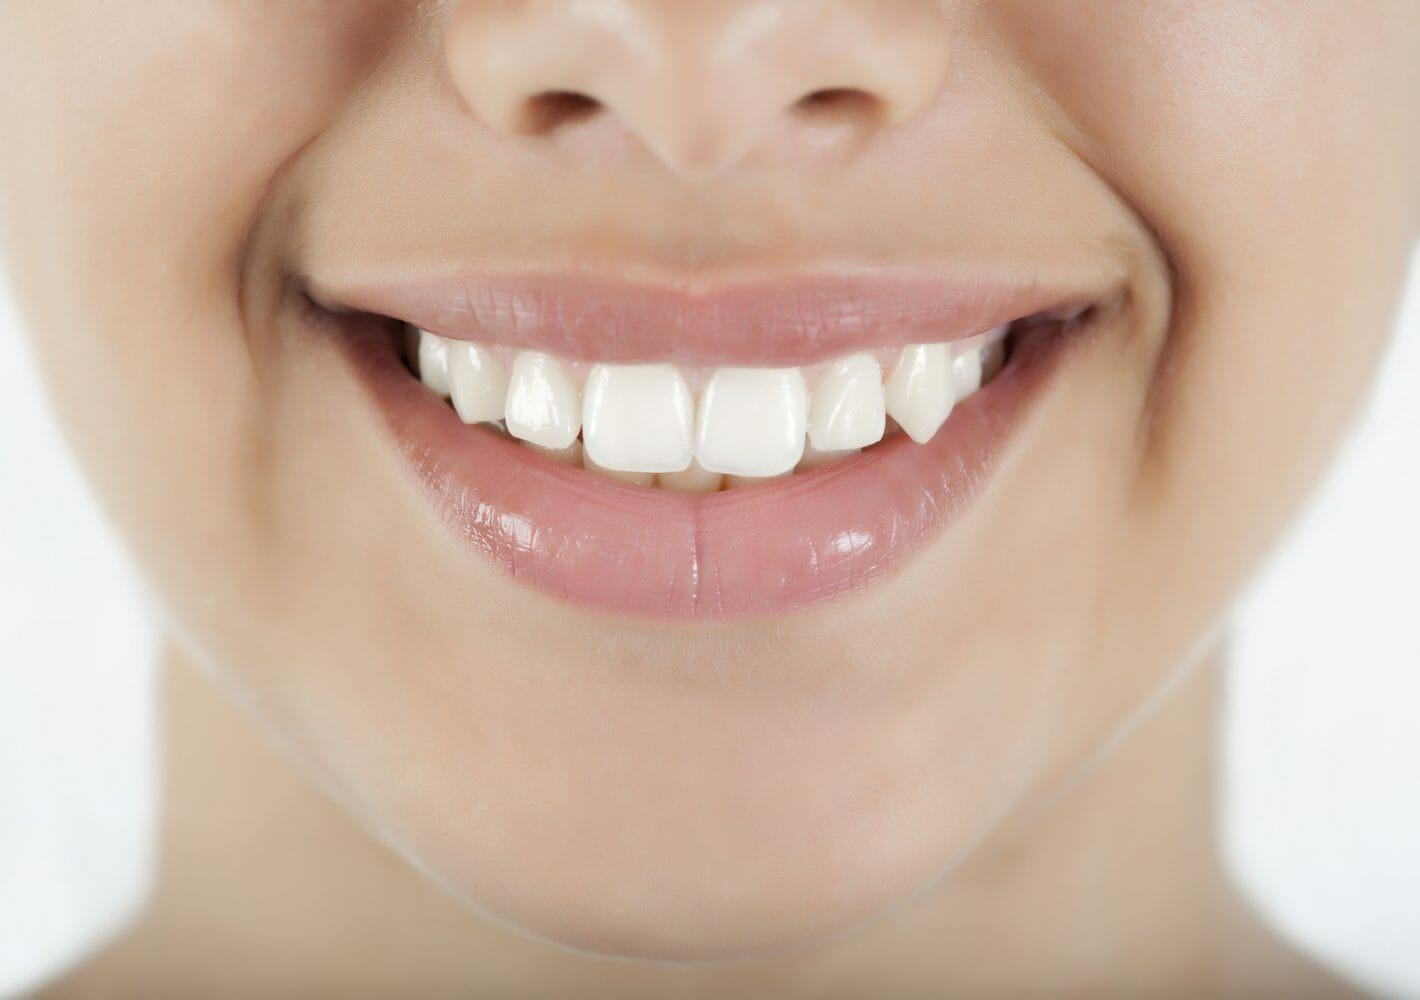 Are Crooked Teeth Genetic?